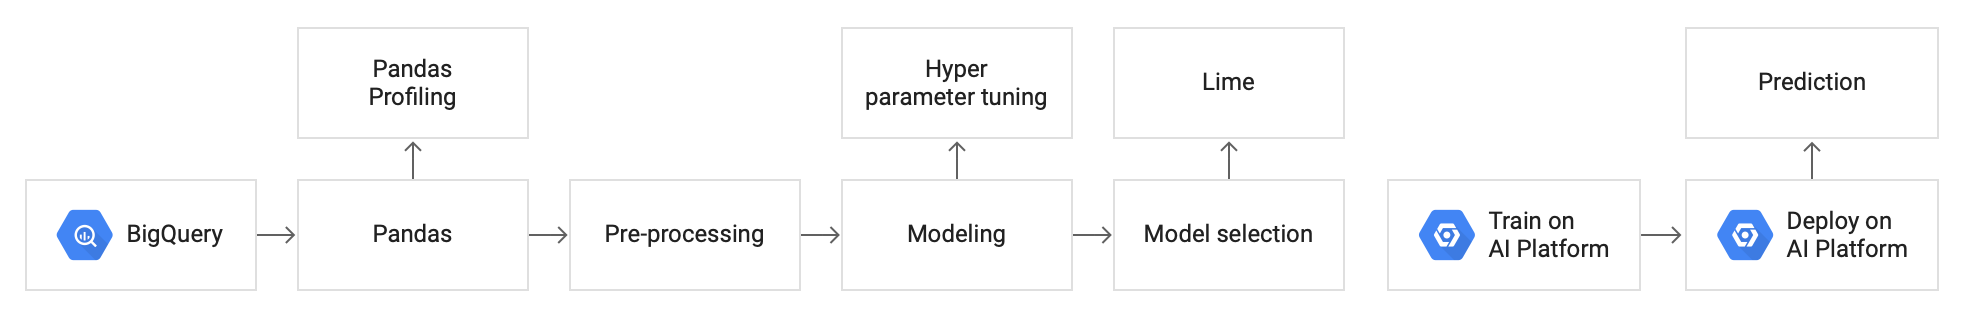 Diagram that shows the architecture of the machine learning model used in this tutorial.